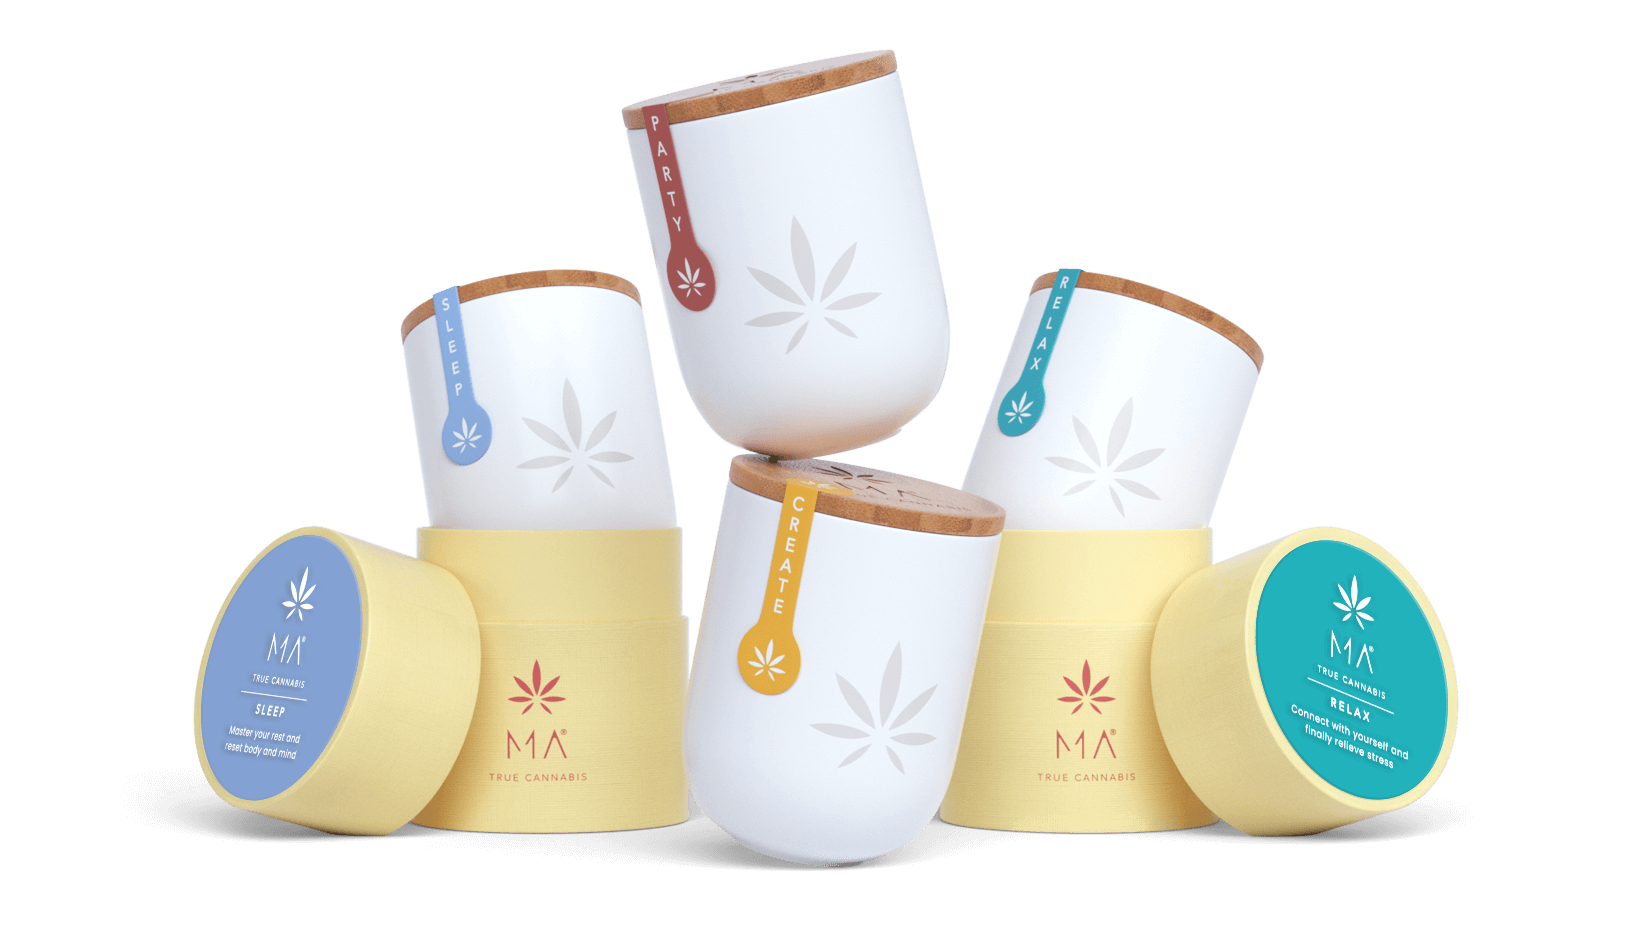 Cannabis Jar & Box for Flowers and Joints | MA True Cannabis